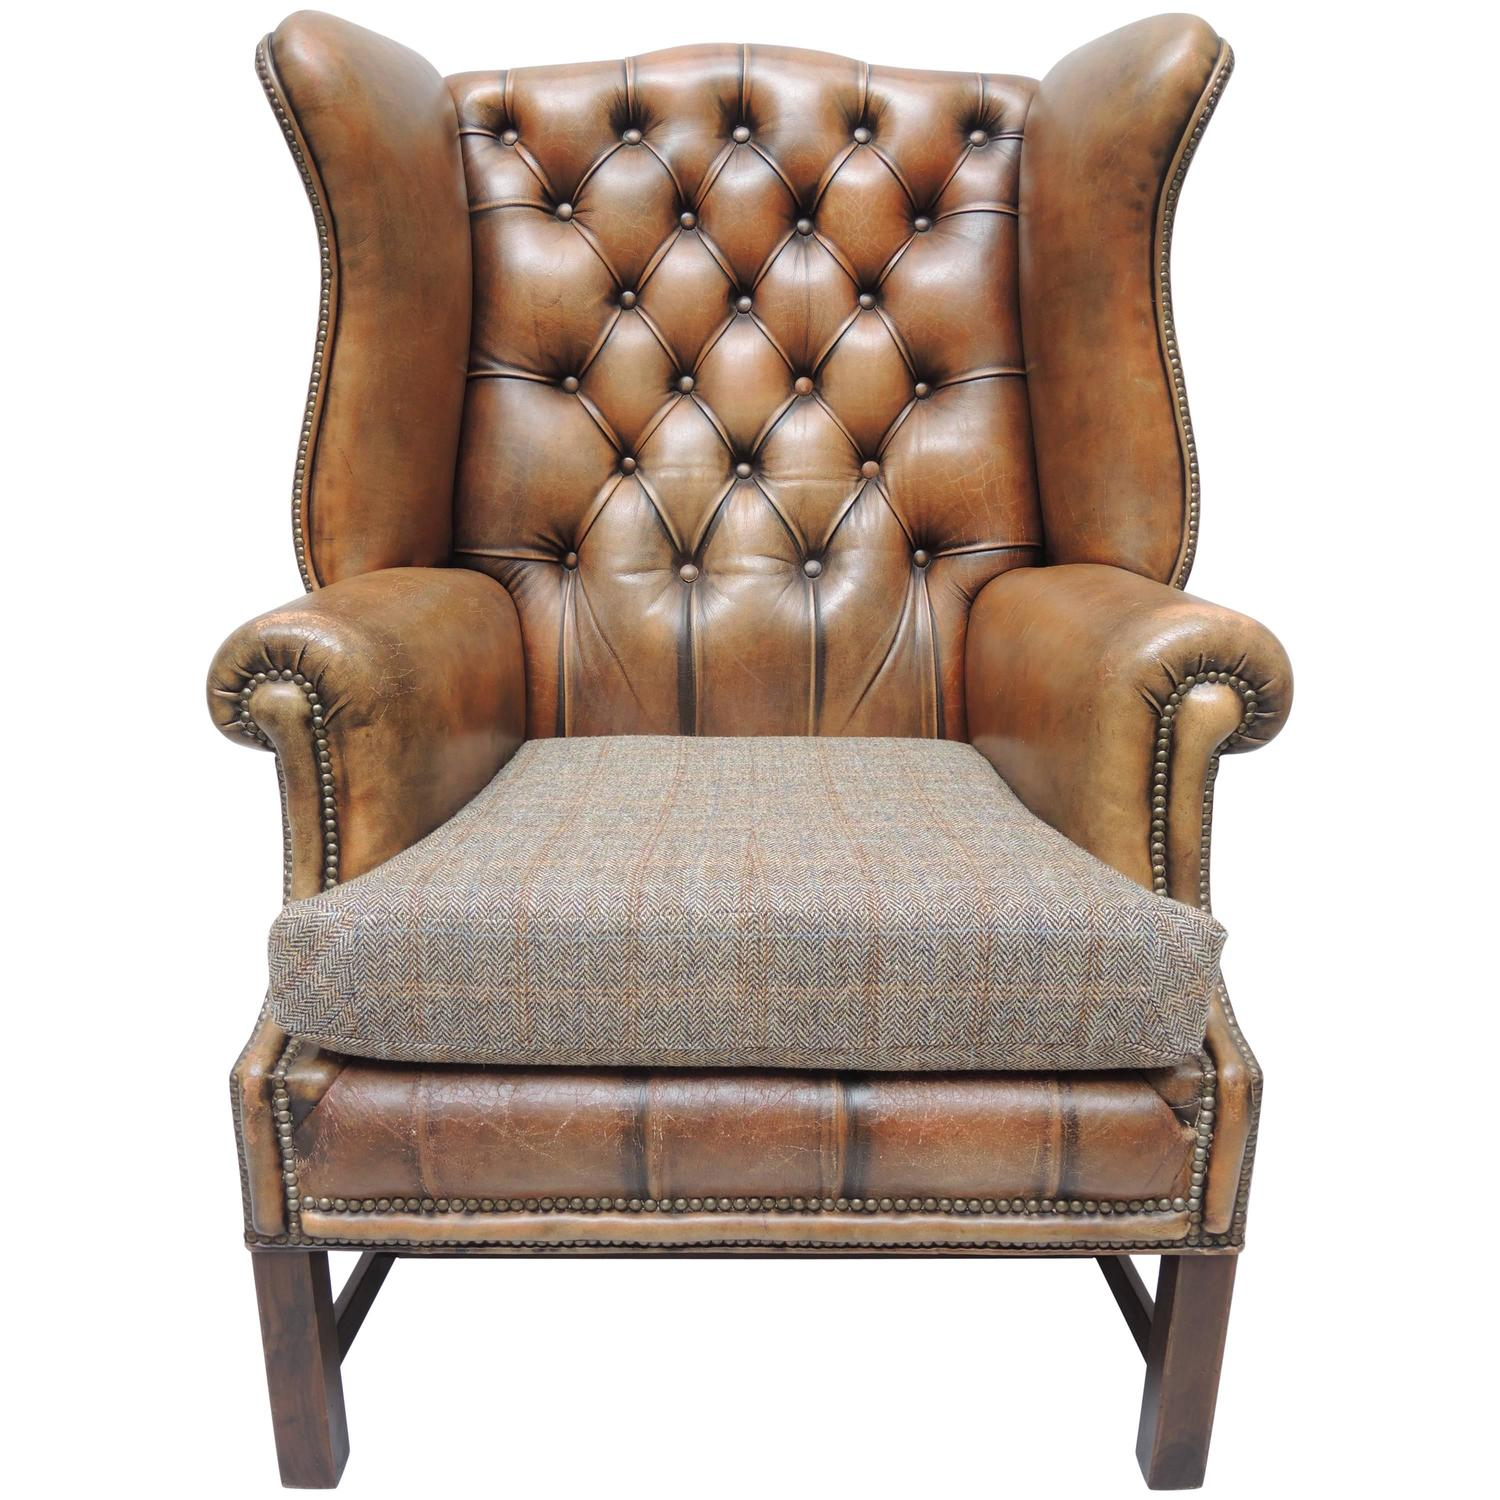 English Georgian Style Brown Leather Wing Chair with Brass Nail